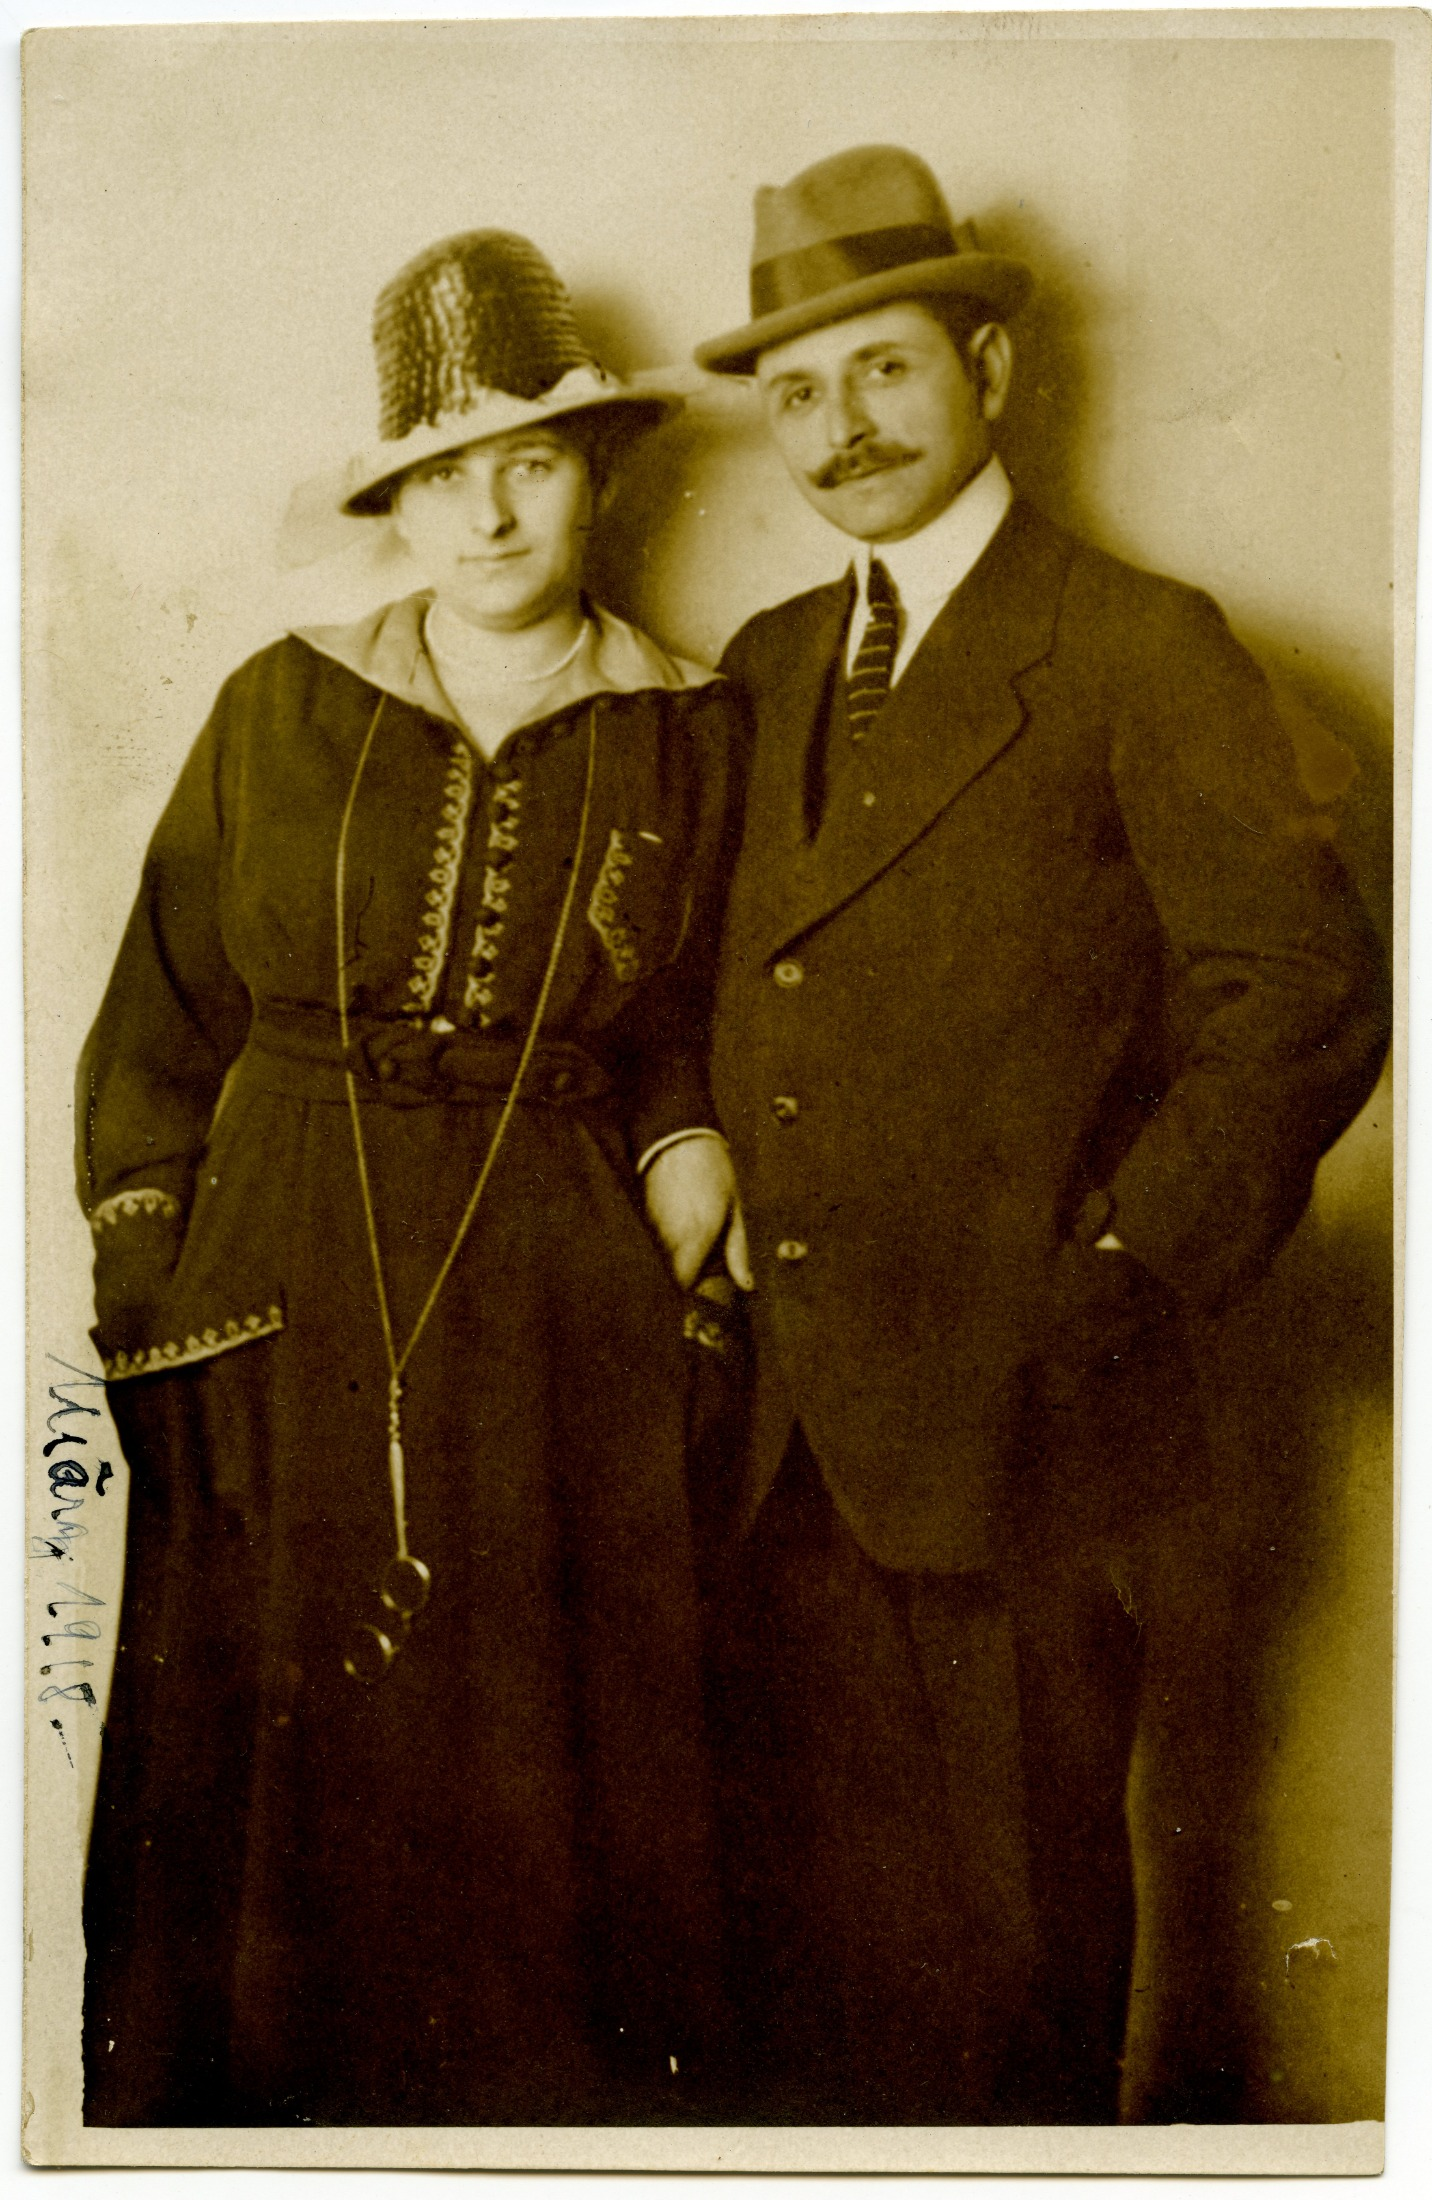 Max and Gertrud Hahn